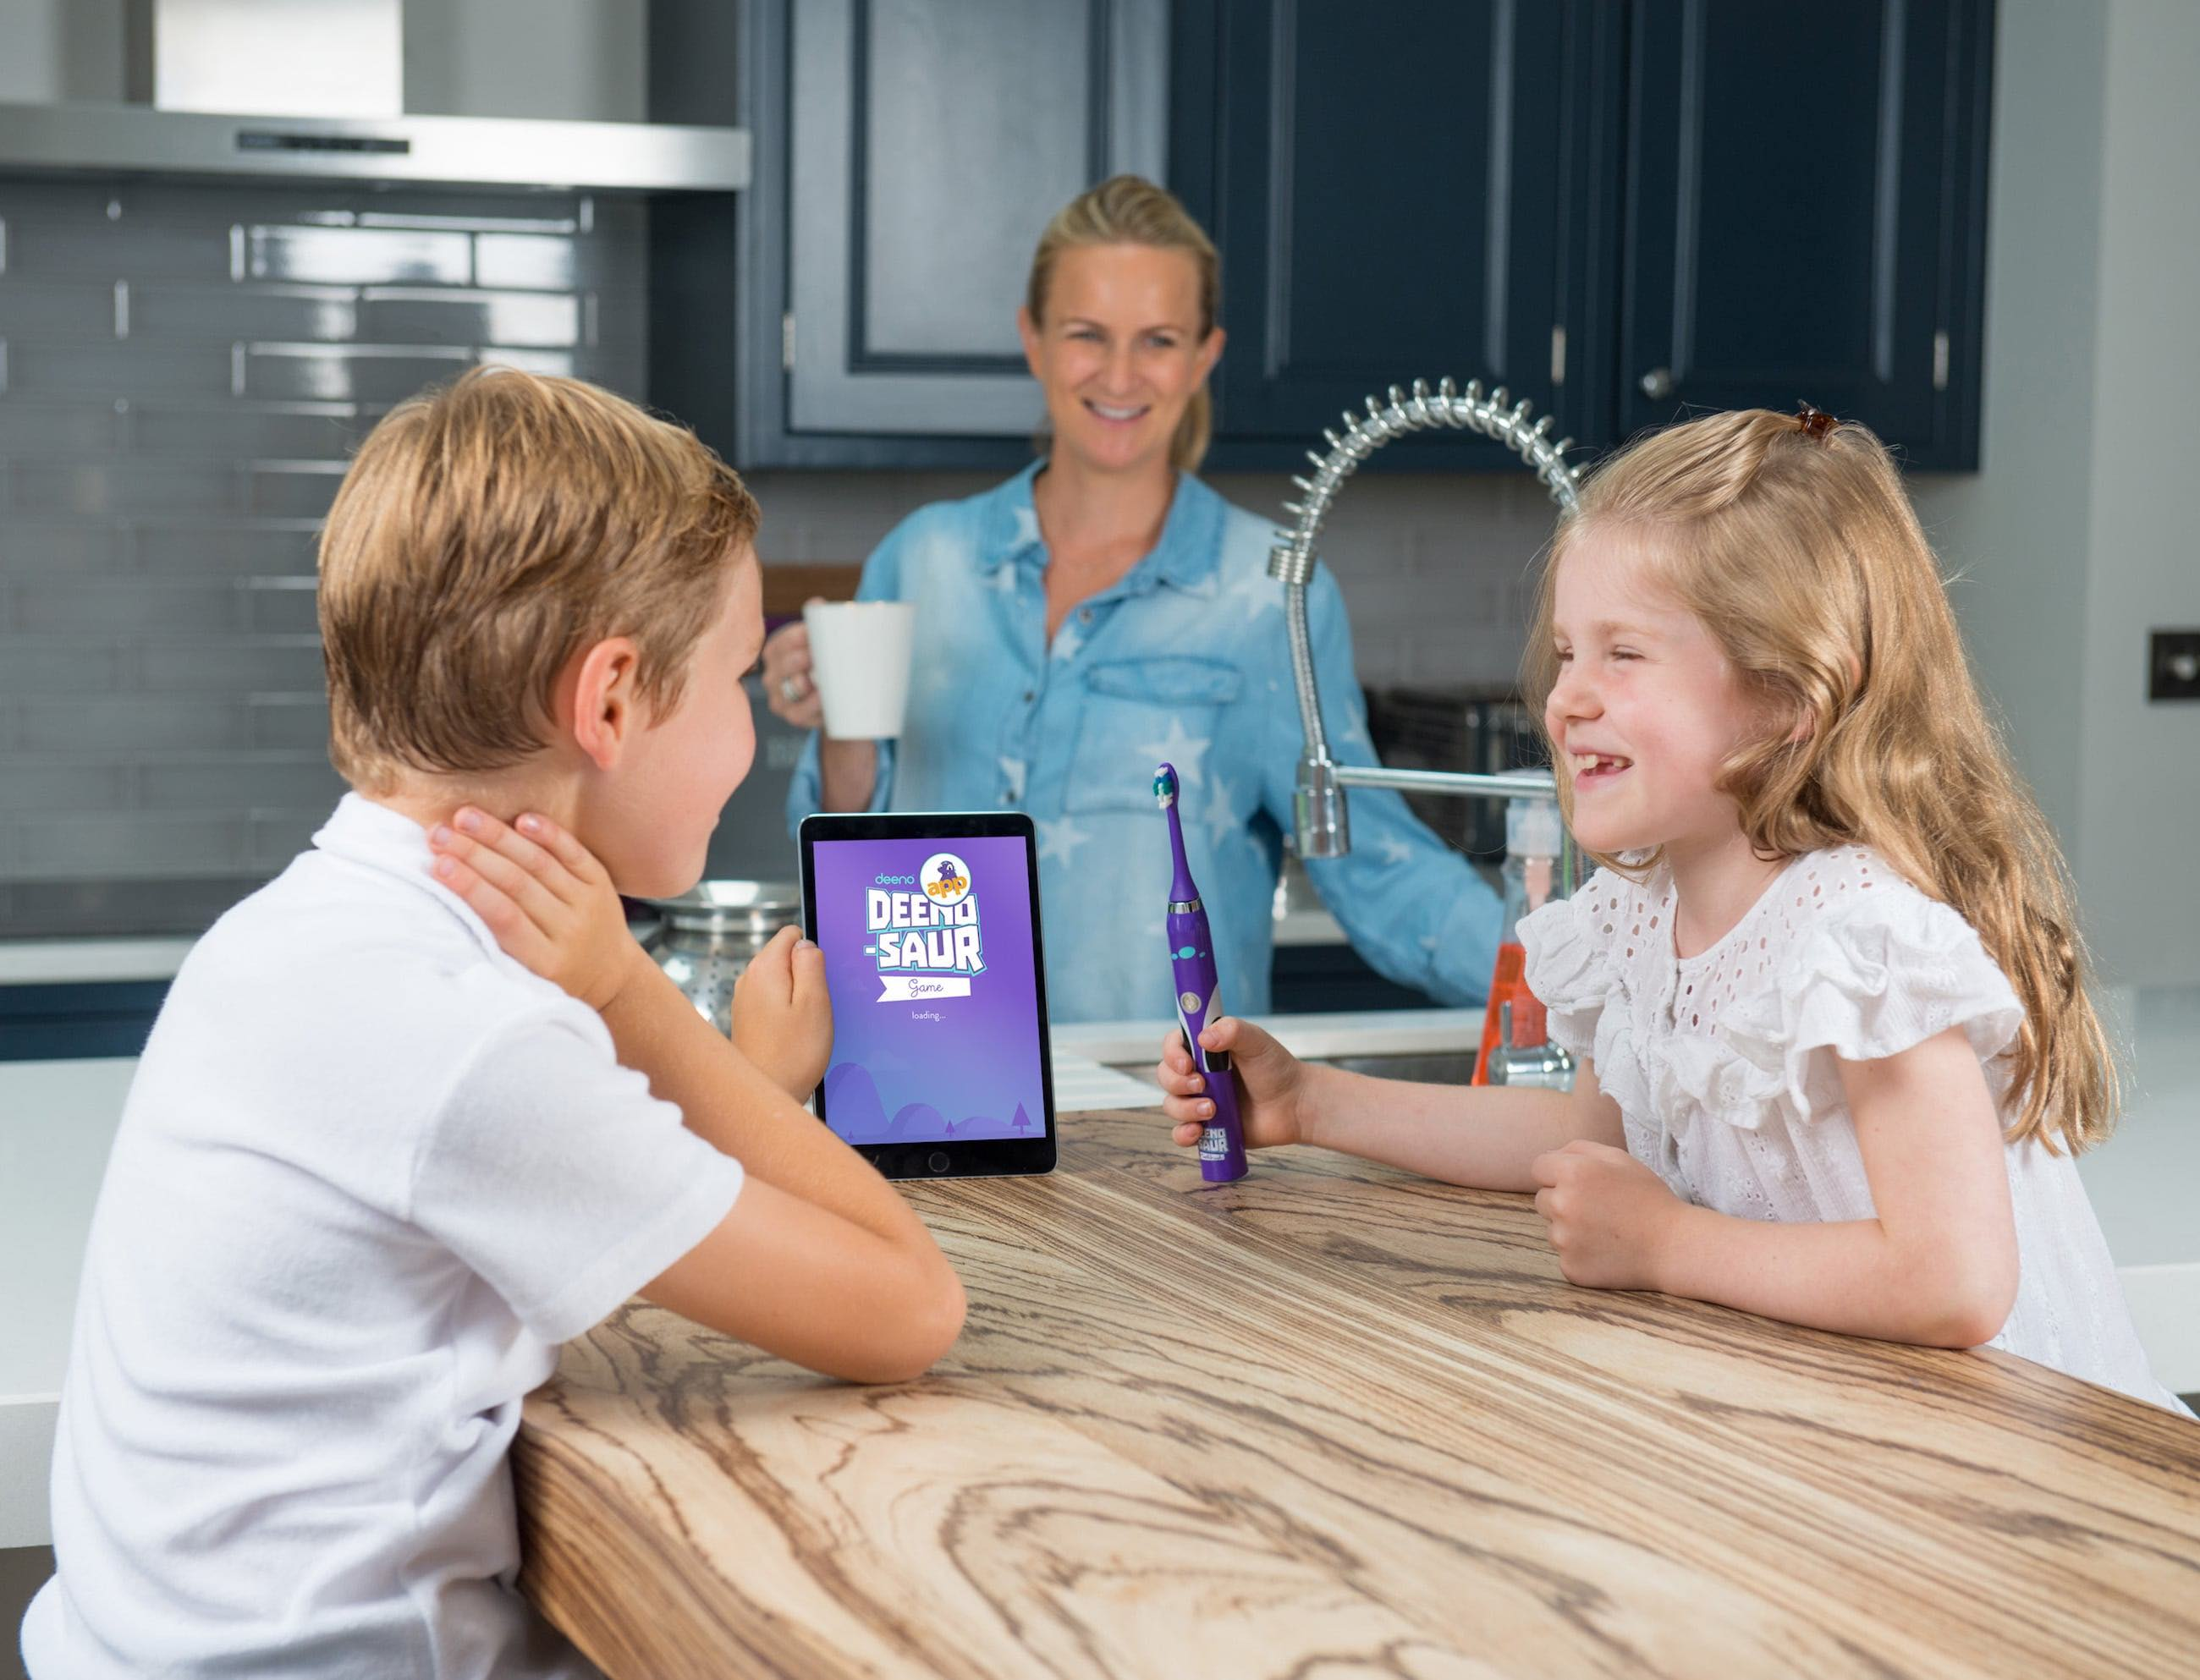 Deeno-saur Kids Smart Electric Toothbrush